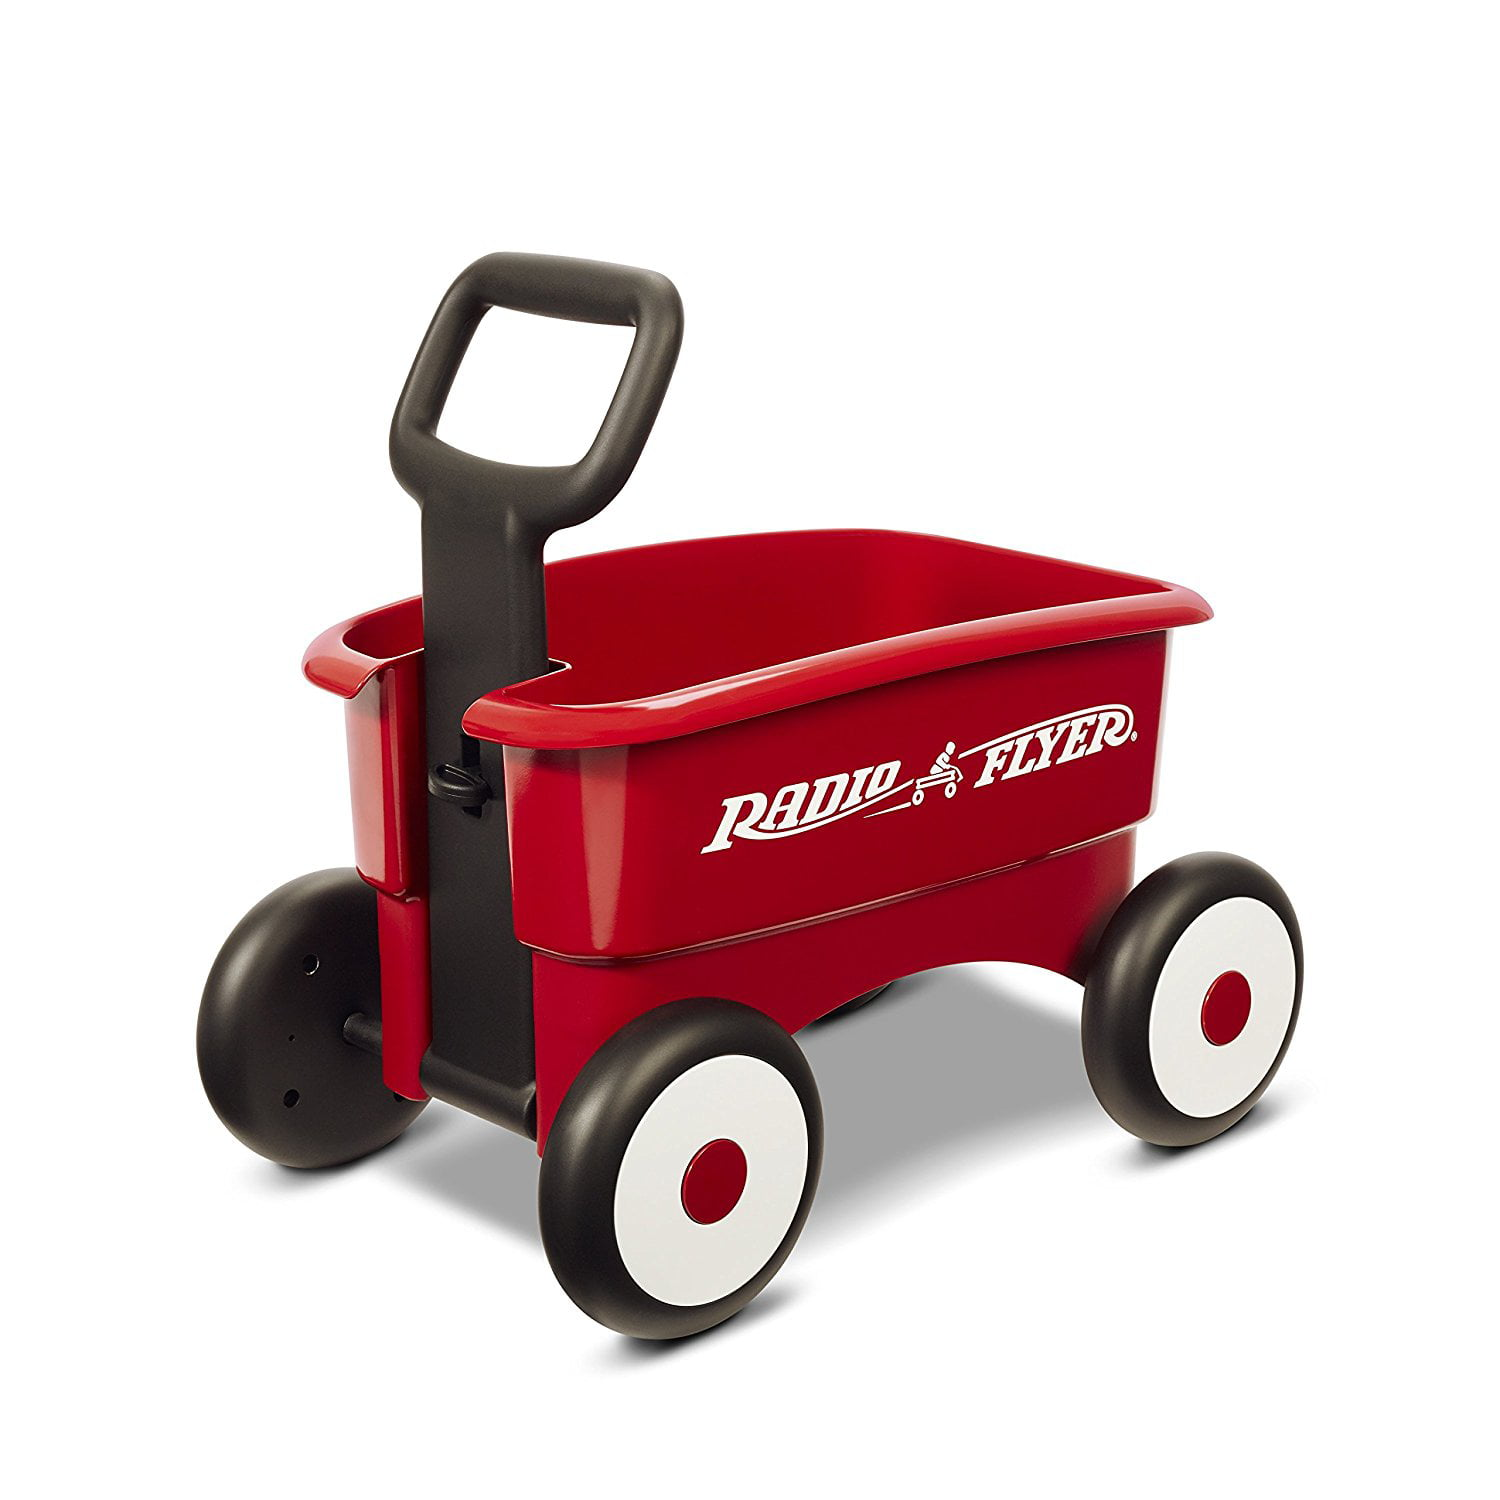 My 1st 2-in-1 Wagon Ride On, Red, 2 wagons in 1 the handle can be locked for a walker wagon, or released for a... by